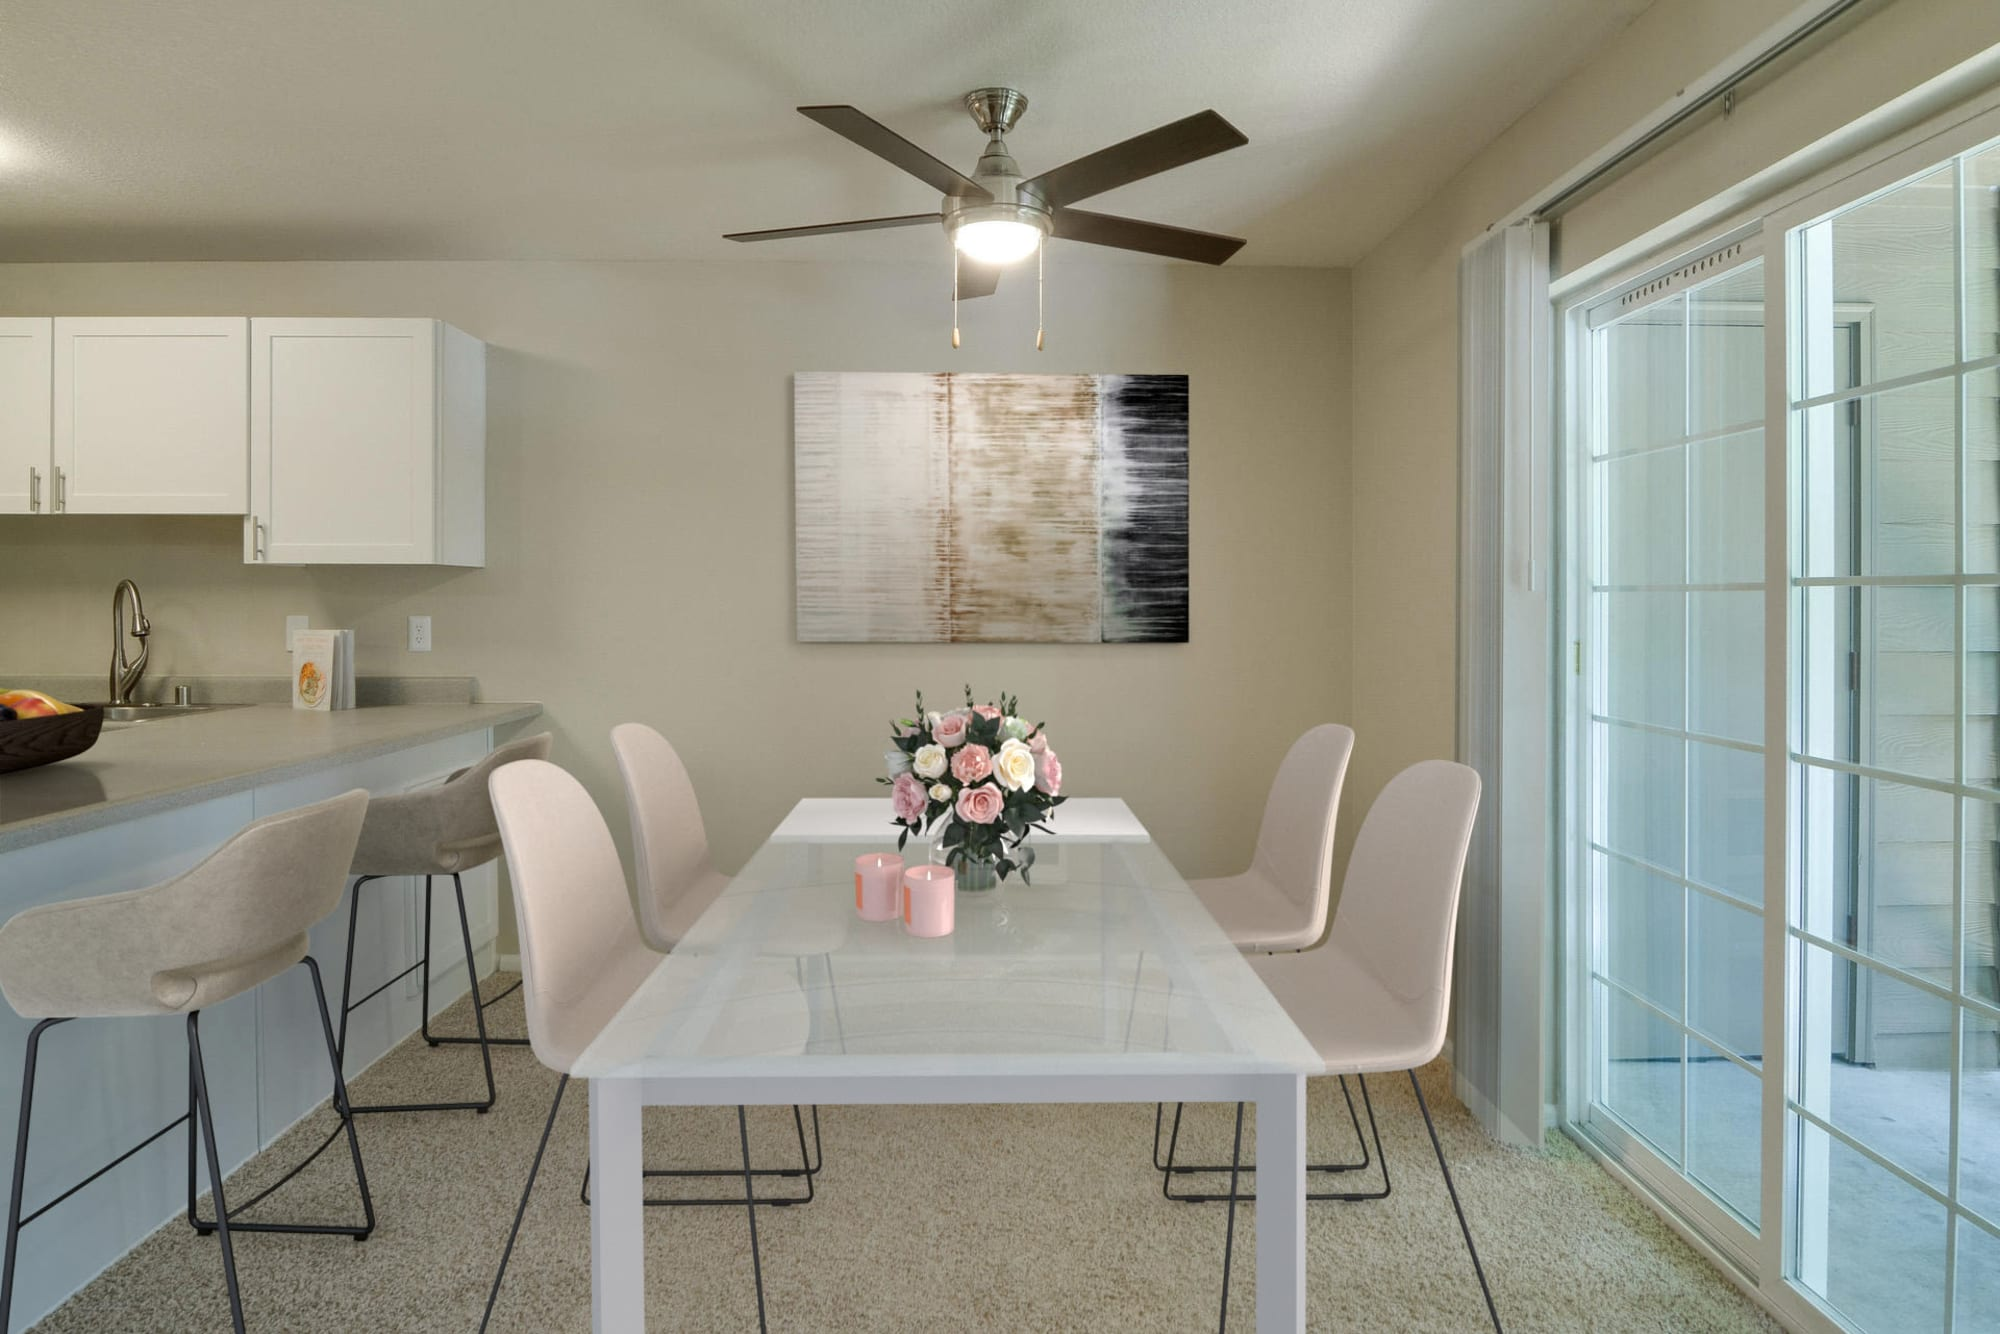 Dining room with a ceiling fan at Carriage House Apartments in Vancouver, Washington